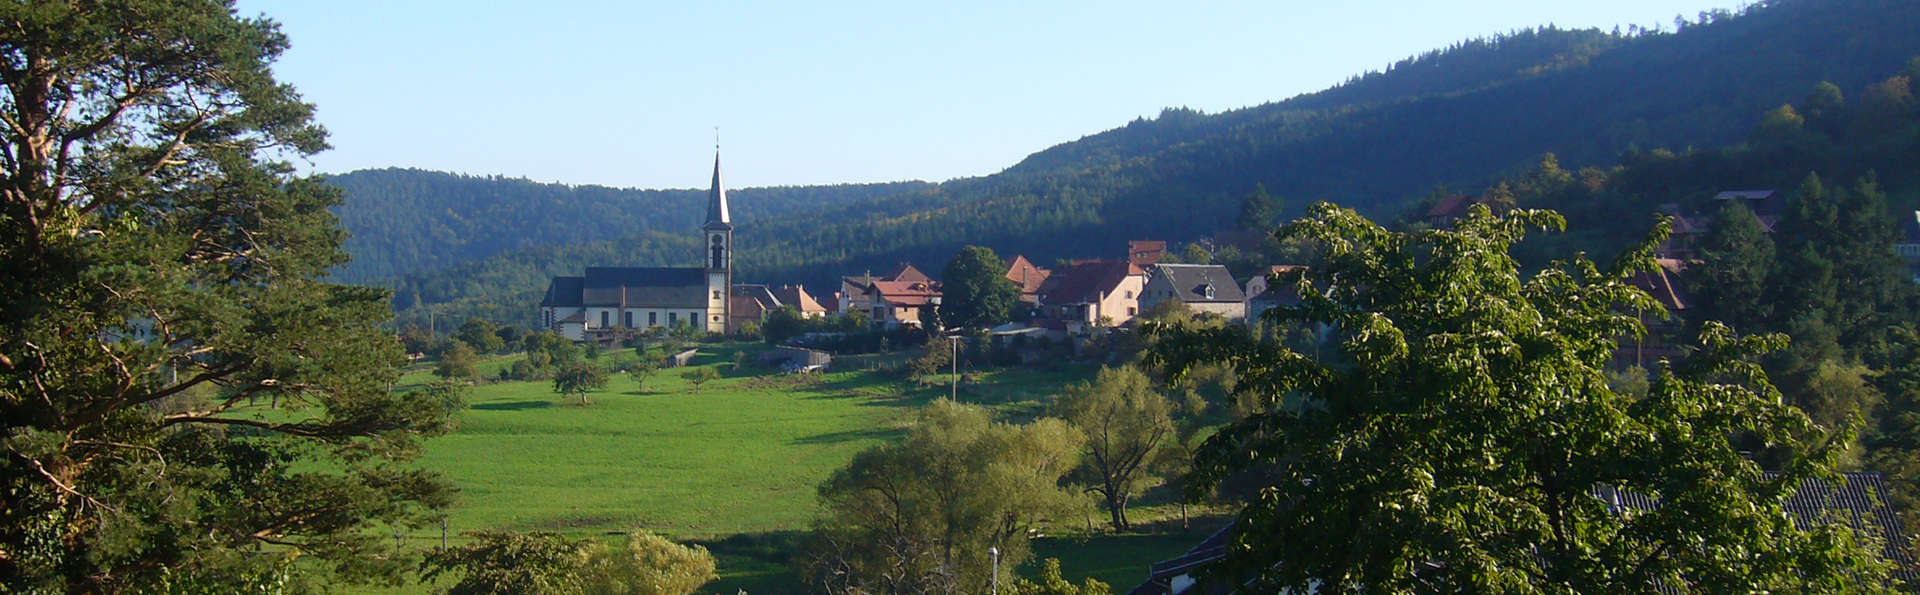 Touring Hotel Spa Le Clos Des Sources 3 Thannenkirch France